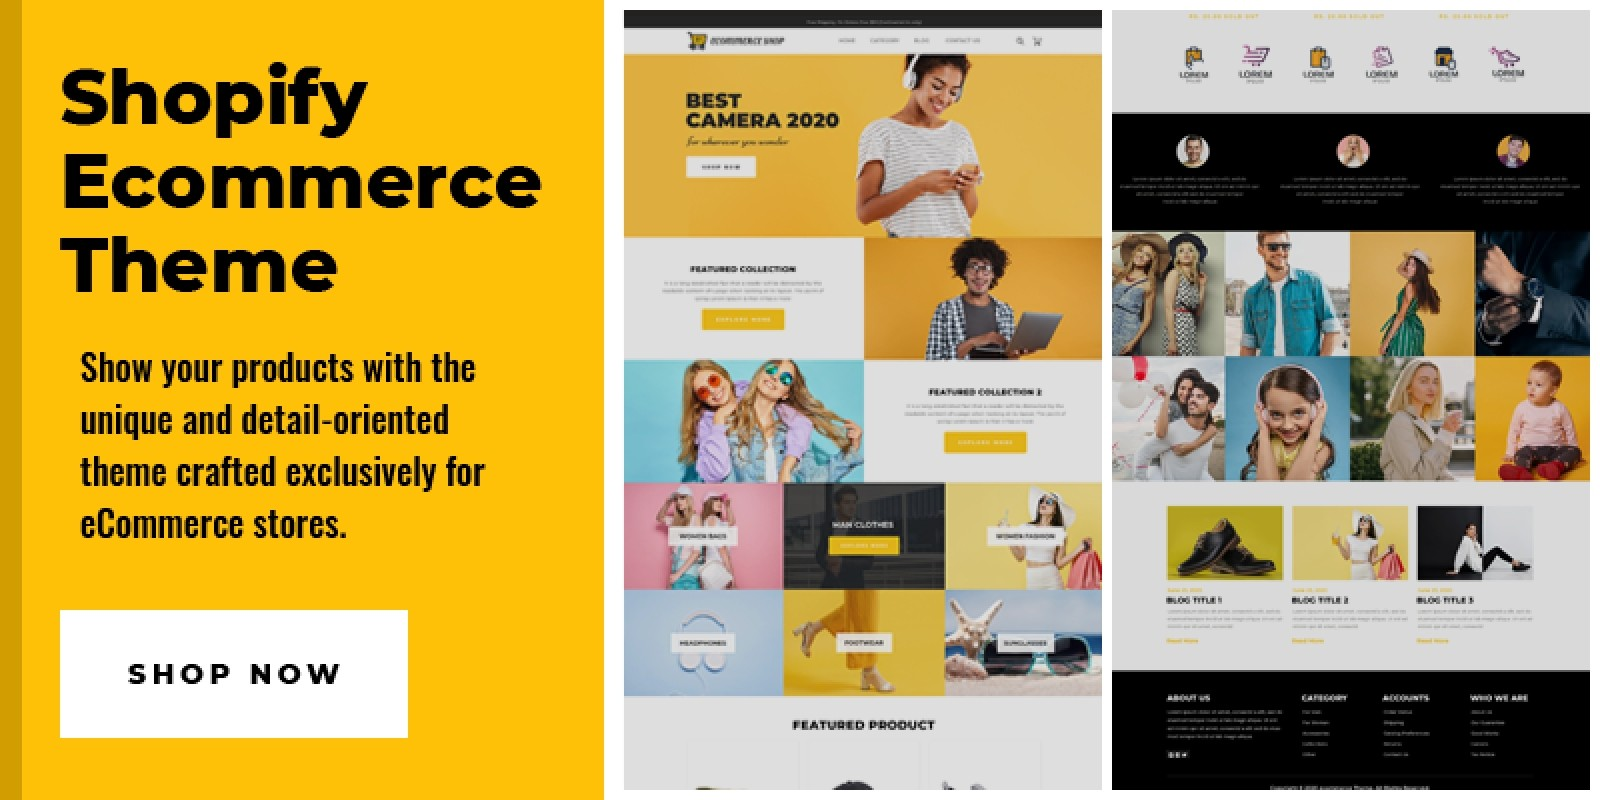 Shopify Ecommerce Theme